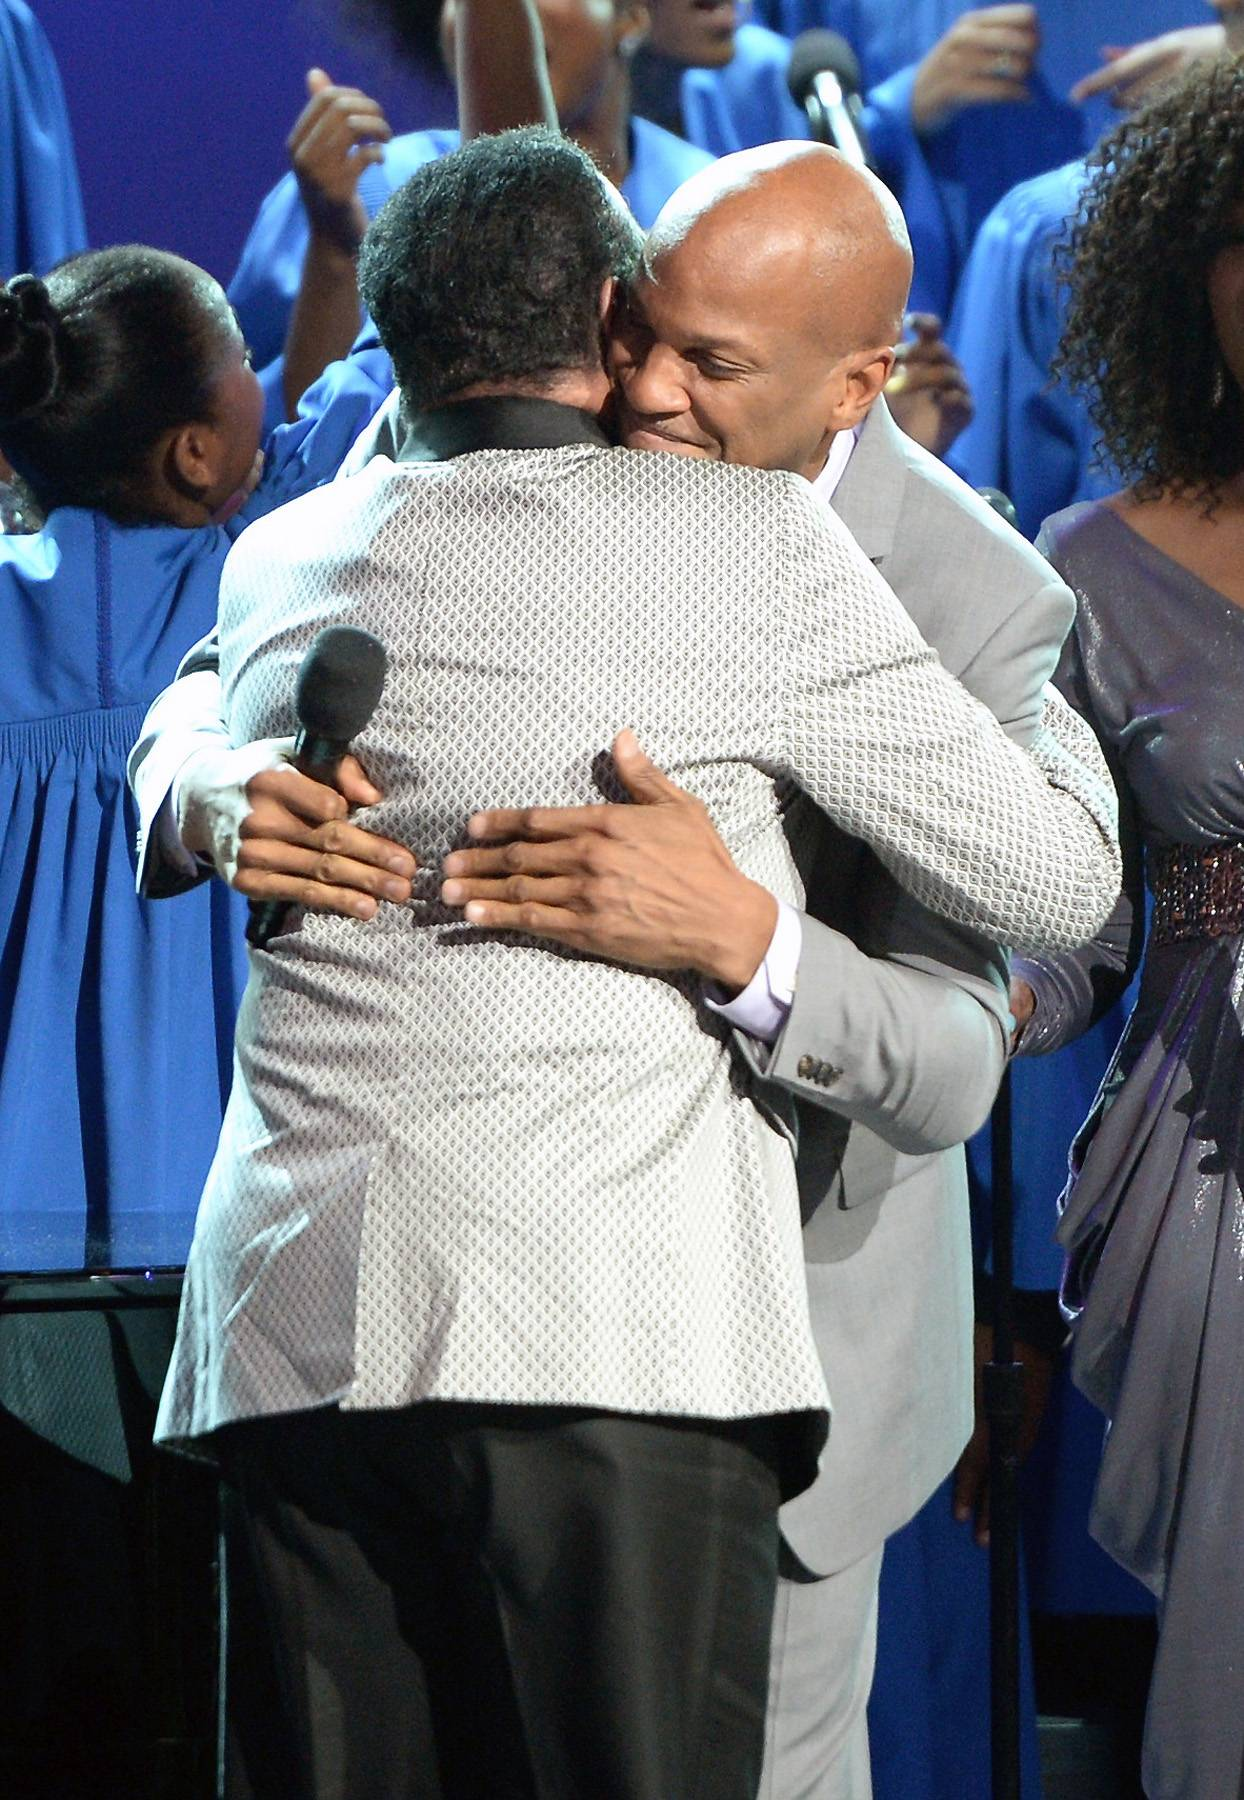 Brotherly Love - Donnie McClurkin and Richard Smallwood hug it out on stage after their moving joint performance.(Photo: Jason Kempin/Getty Images for BET)